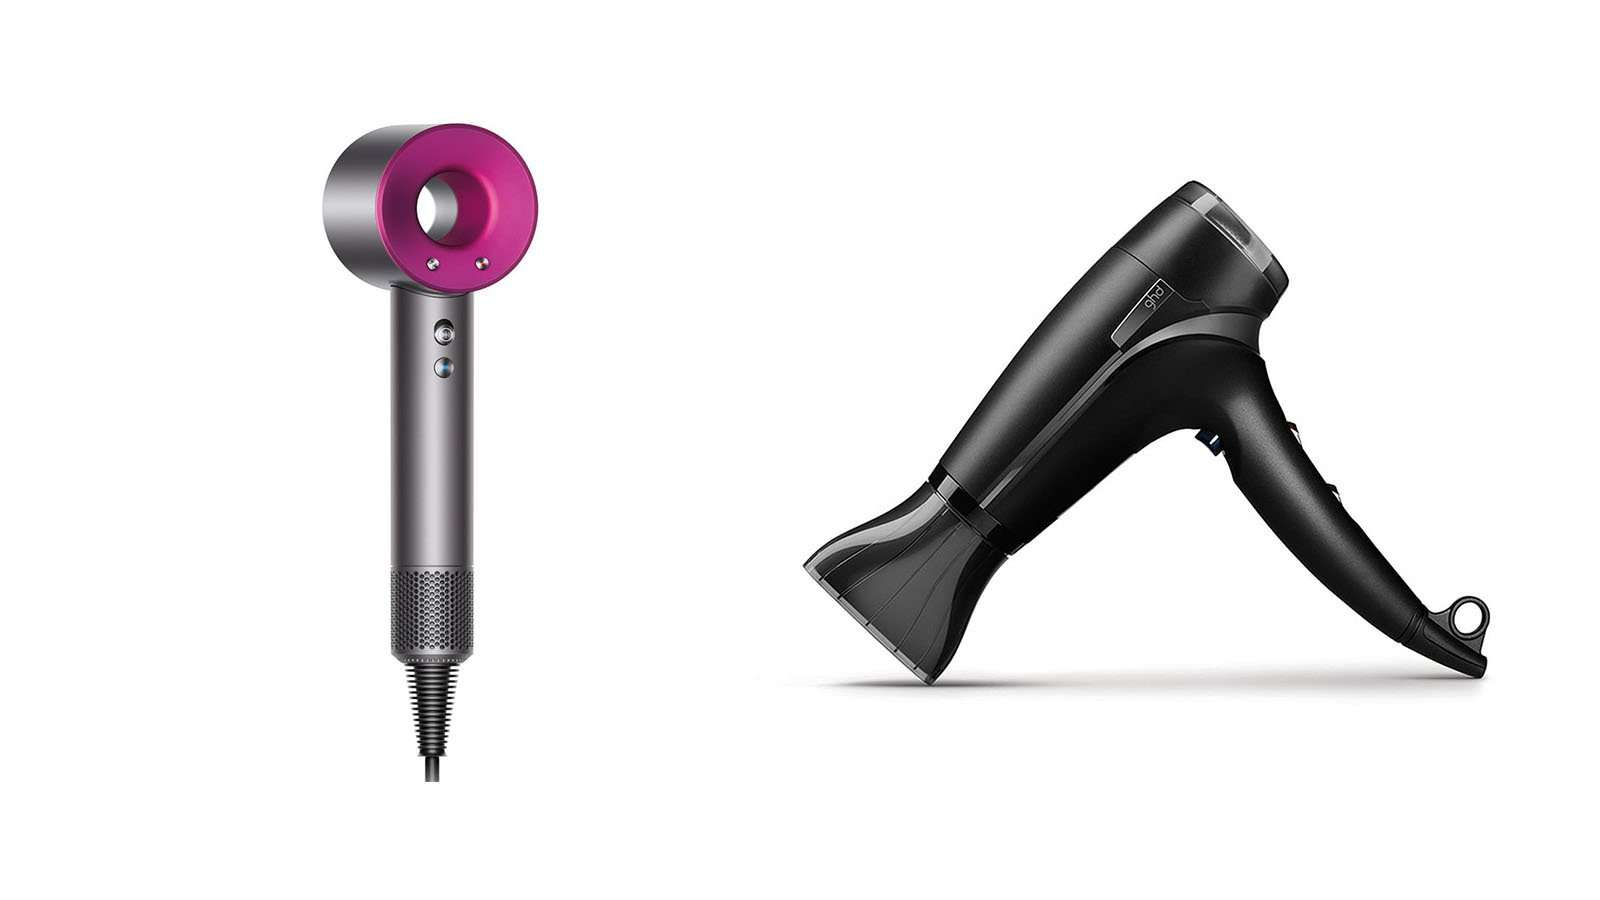 Dyson Supersonic vs ghd Aura